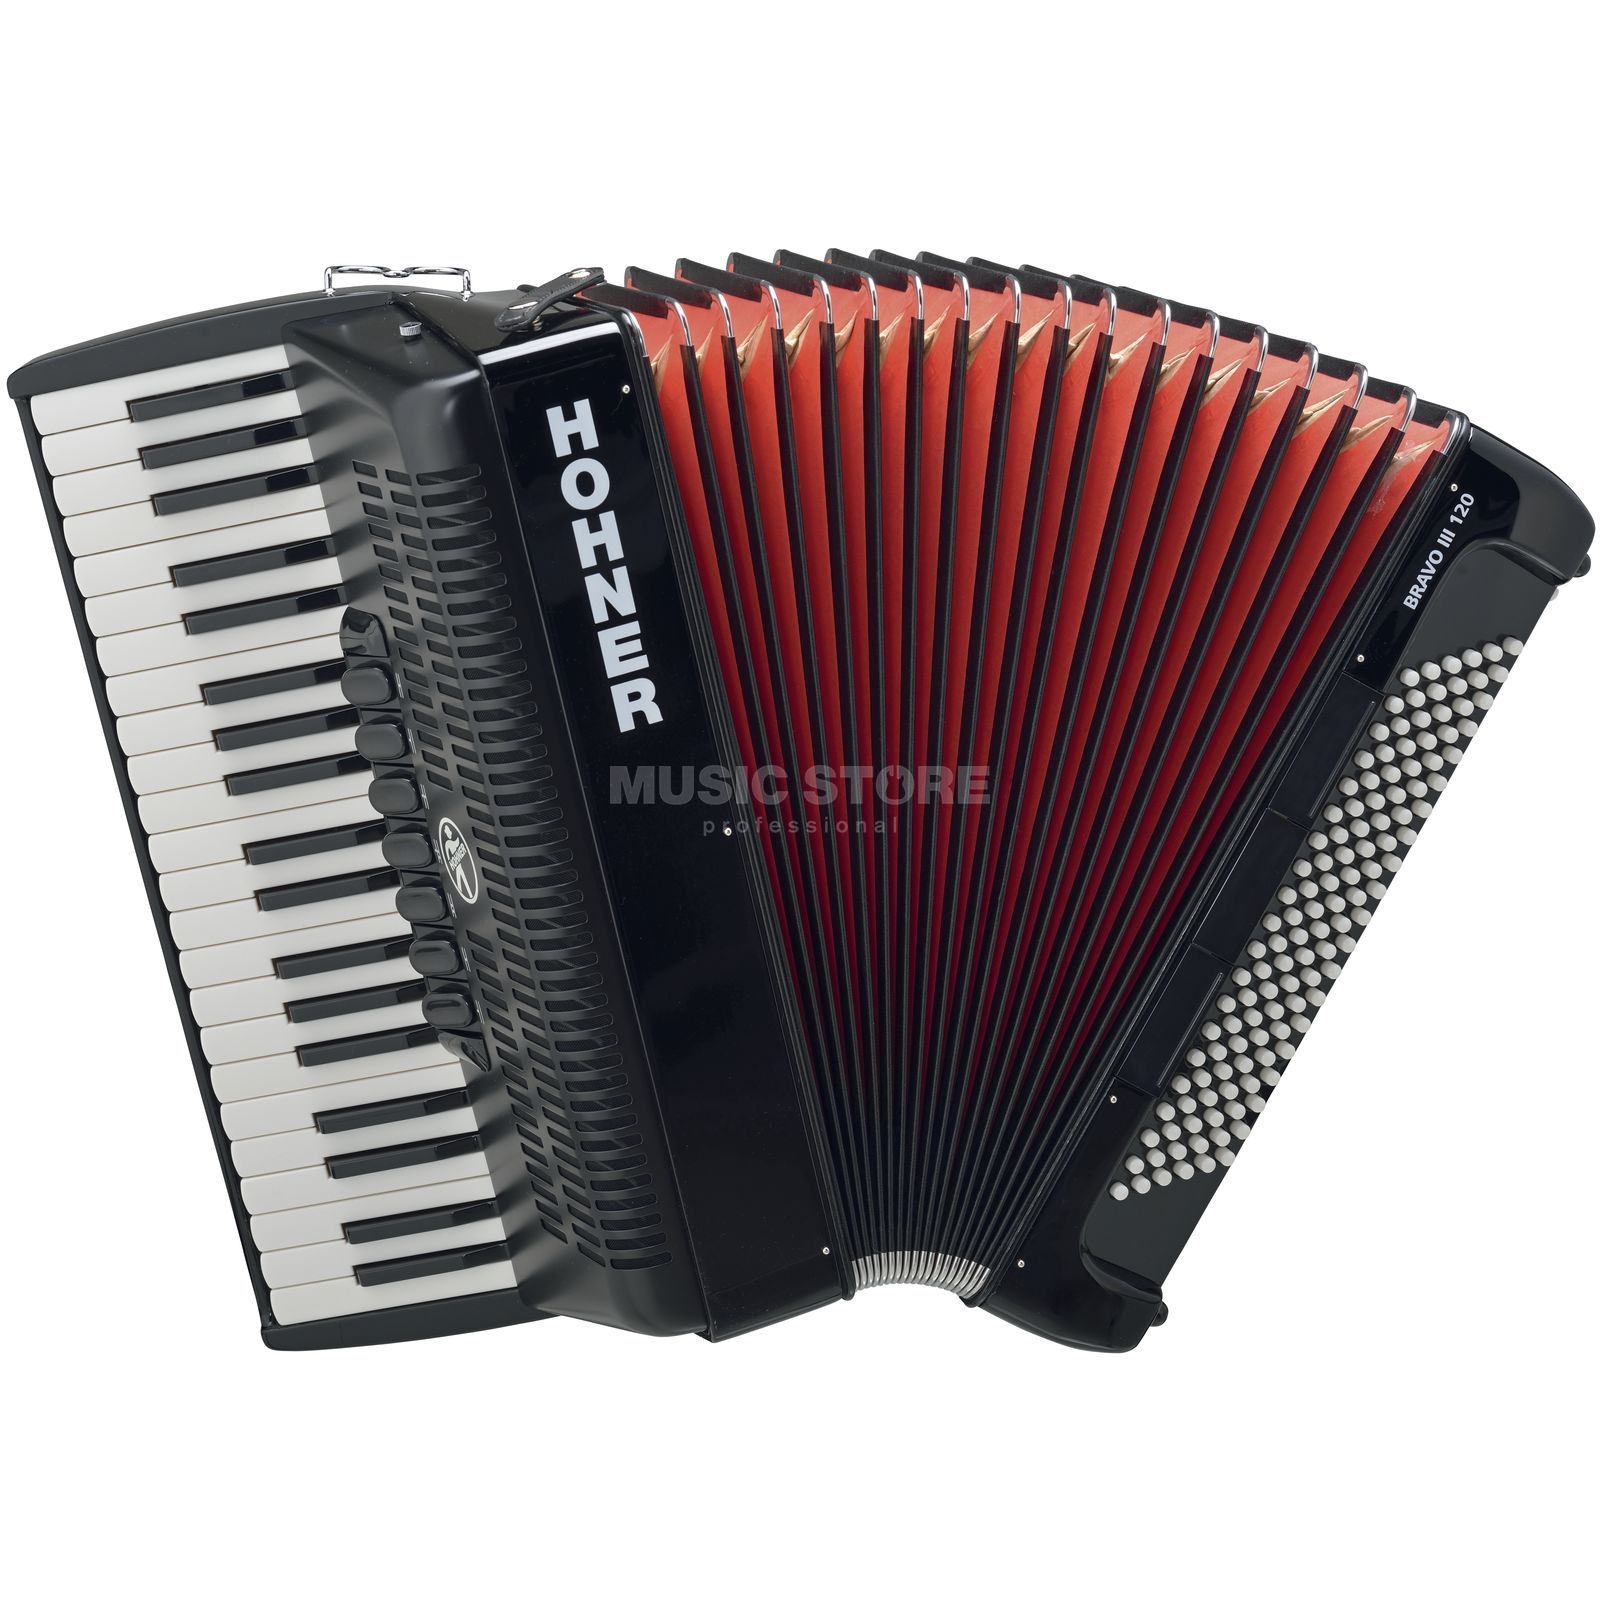 Hohner Piano-Accordion Bravo III 120 black, design 2 Produktbillede